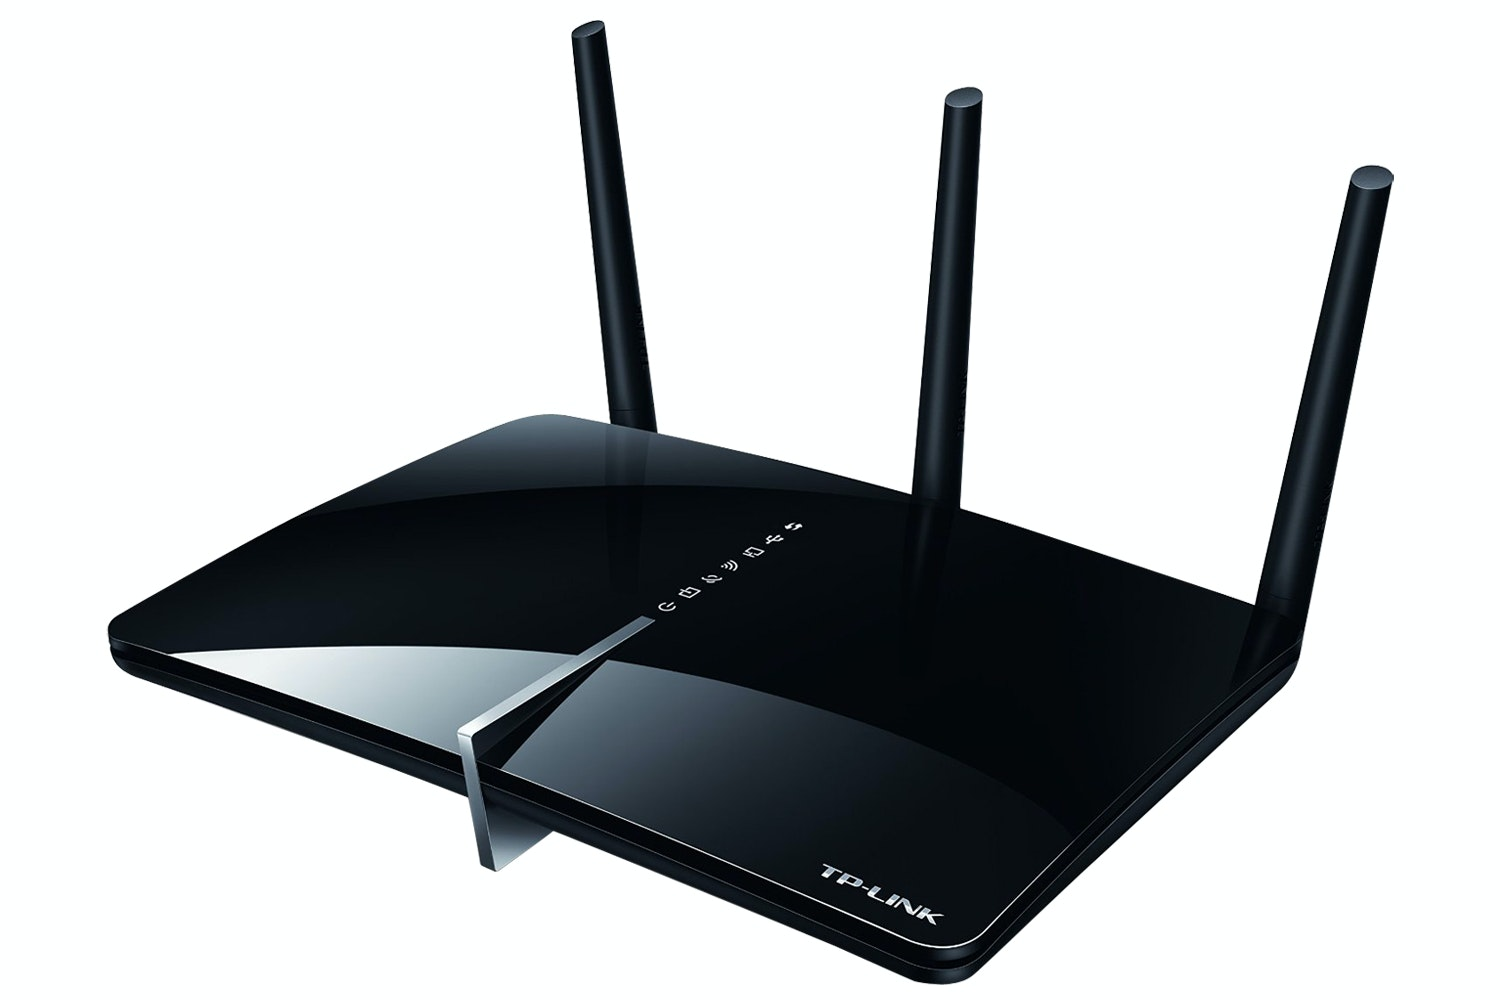 TP-Link AC750 Wireless Dual Band Gigabit ADSL2+ Modem Router